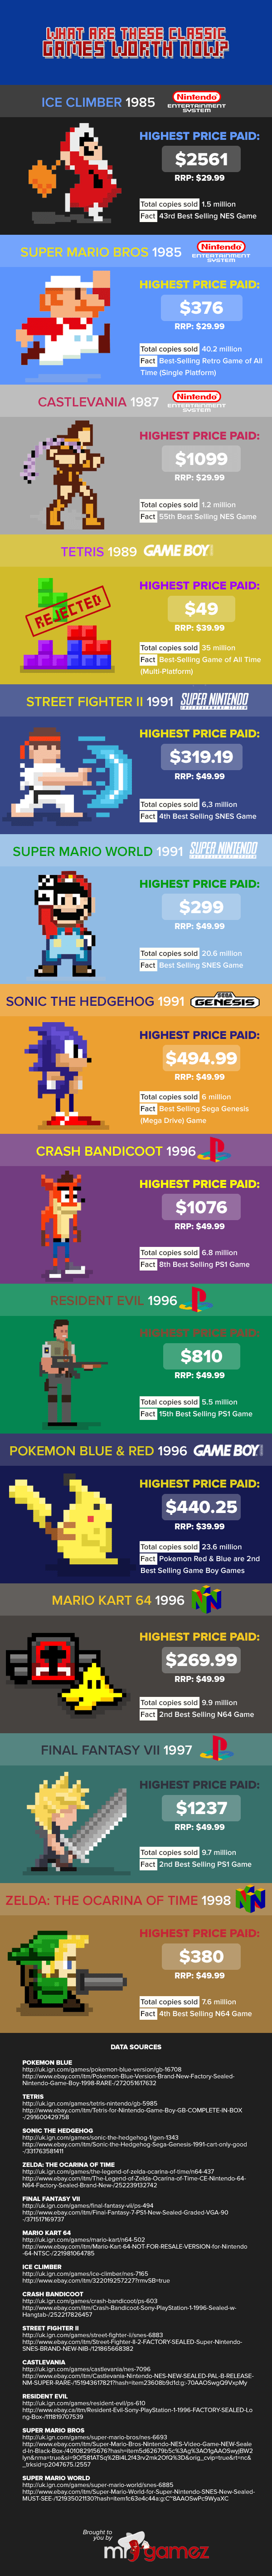 Can You Guess How Much Classic Video Games Are Worth Now?